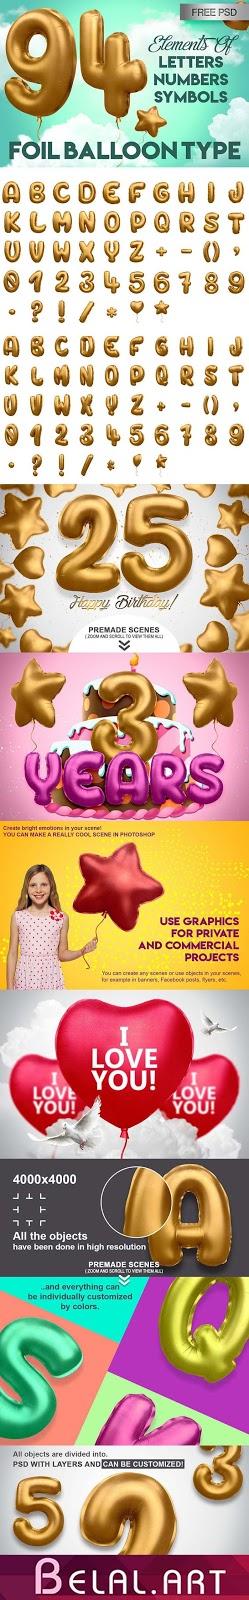 FREE 3D ALPHABET FOIL BALLOON IN PSD (LETTERS, SYMBOبلال ارت - مصدر ابداعكLS, NUMBERS